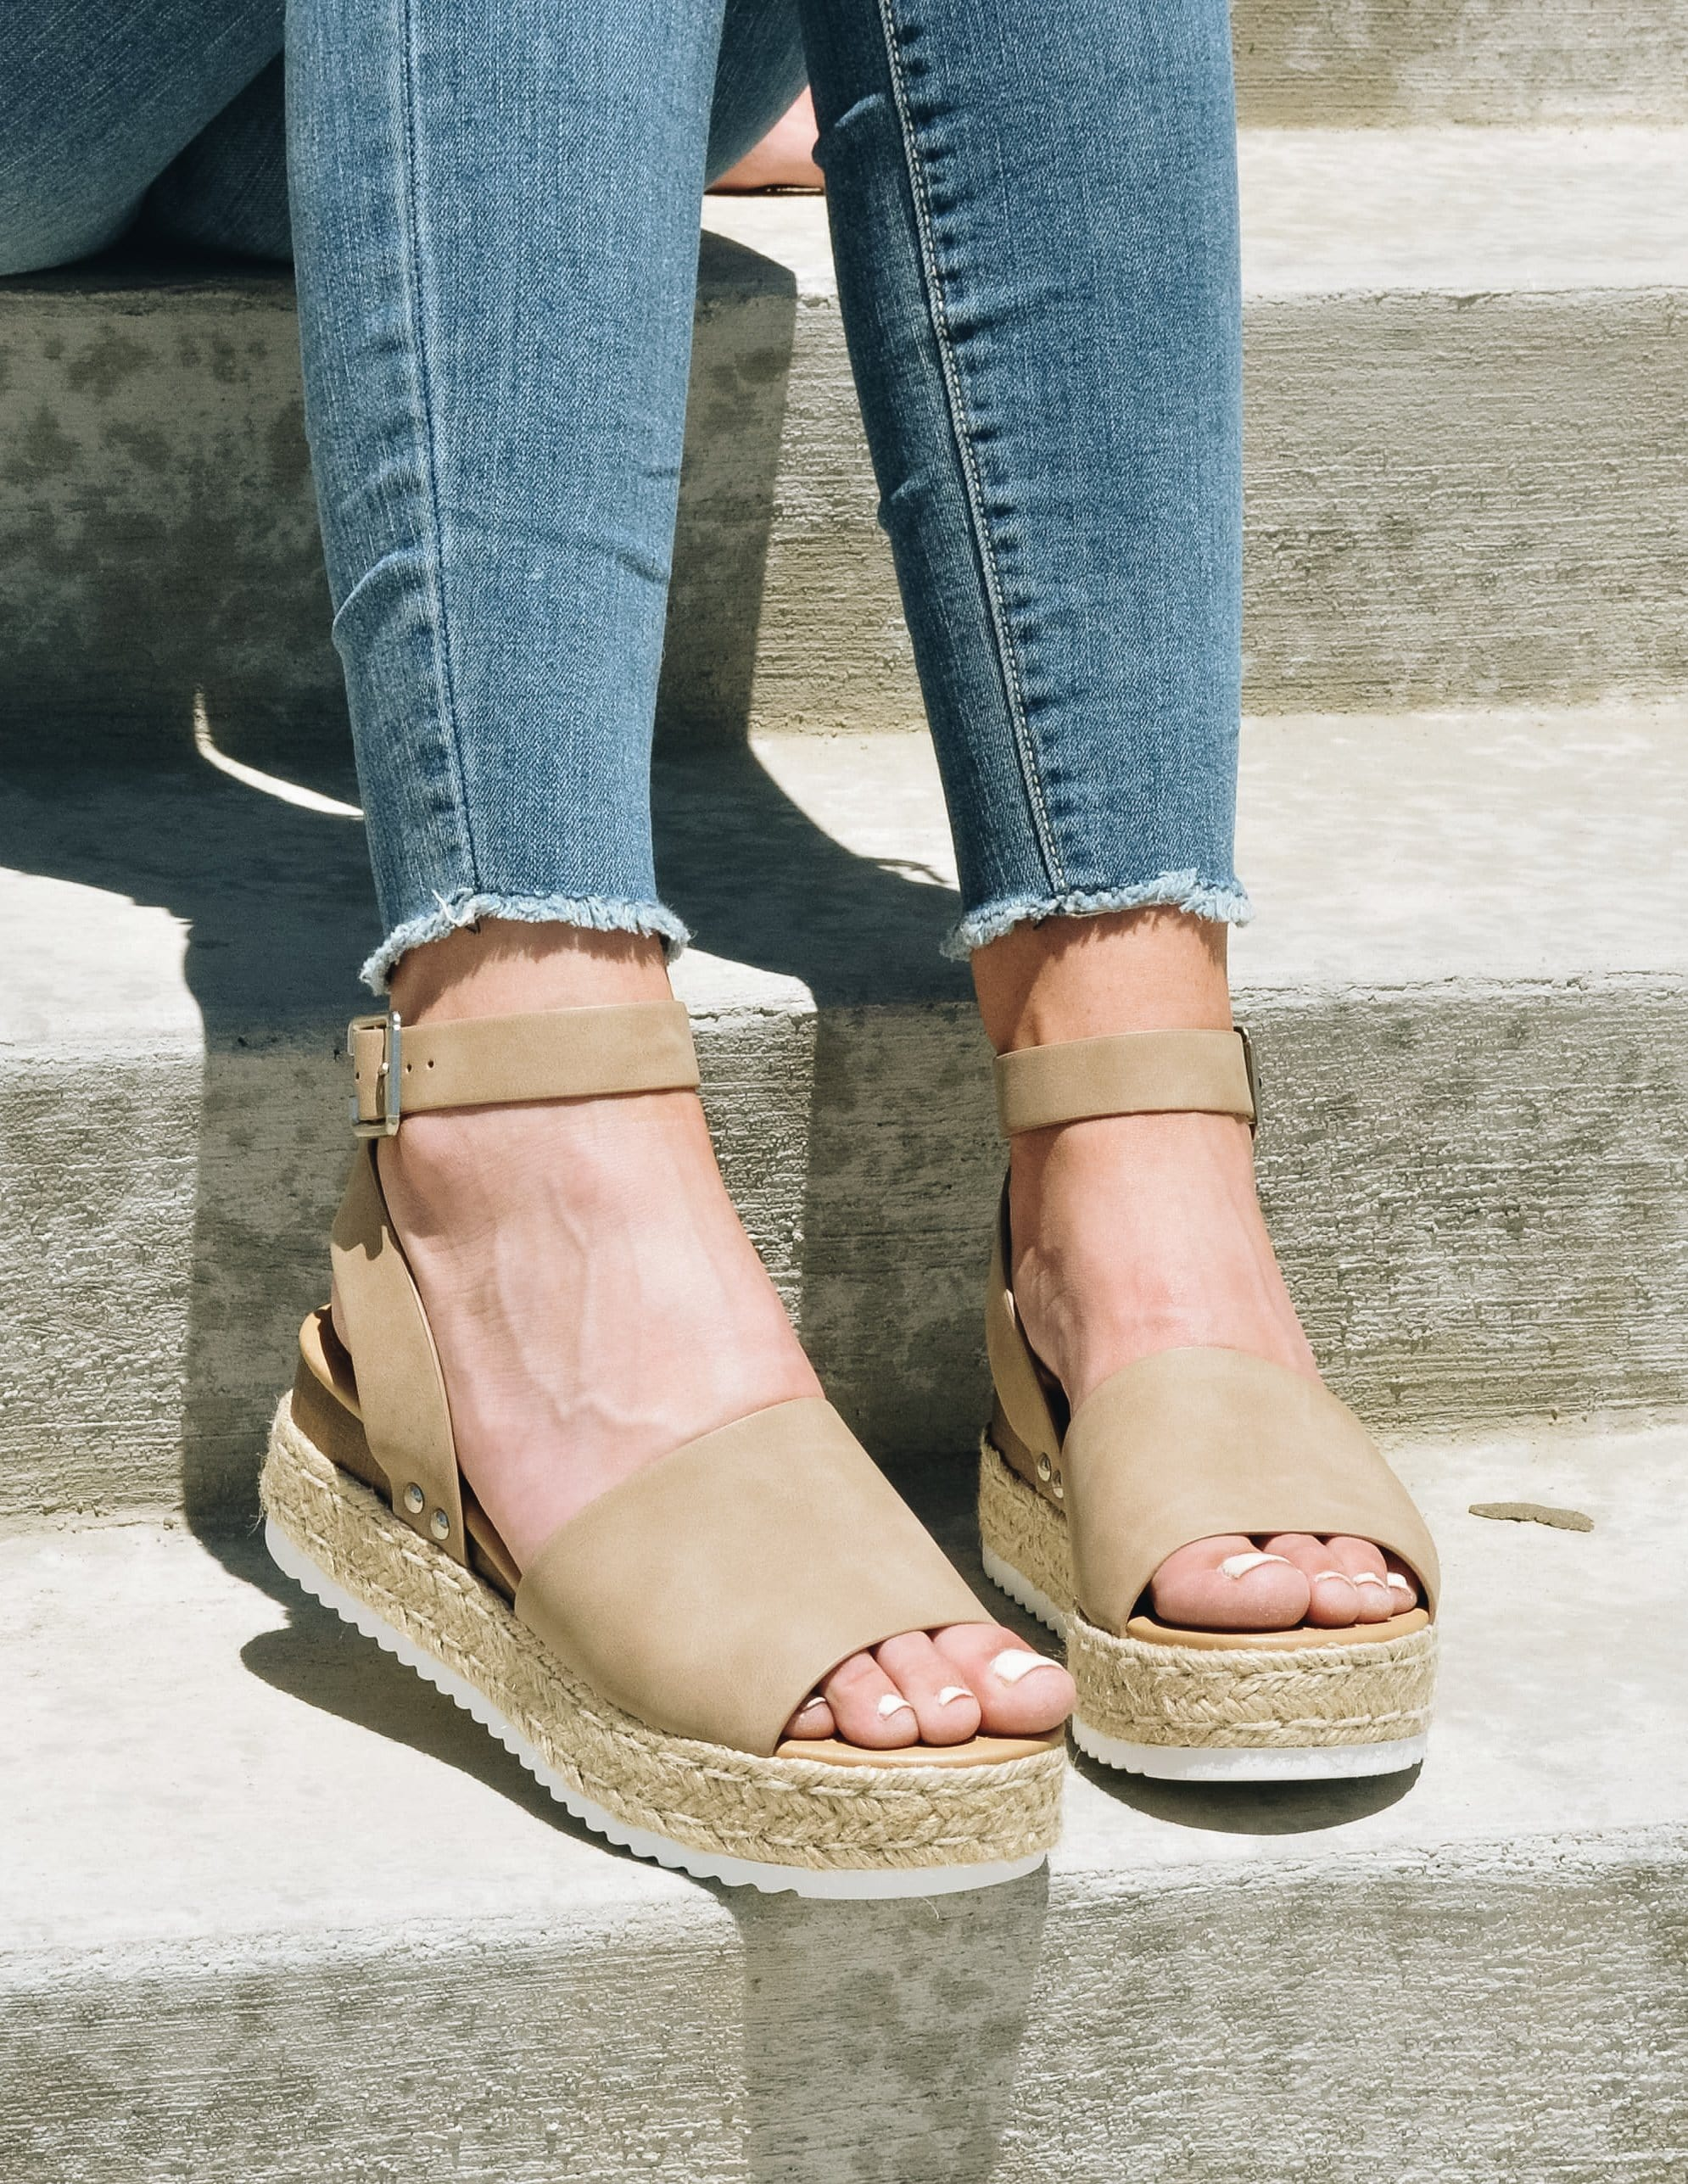 Taupe platform sandals with rope trim on model's feet - elle bleu shoes